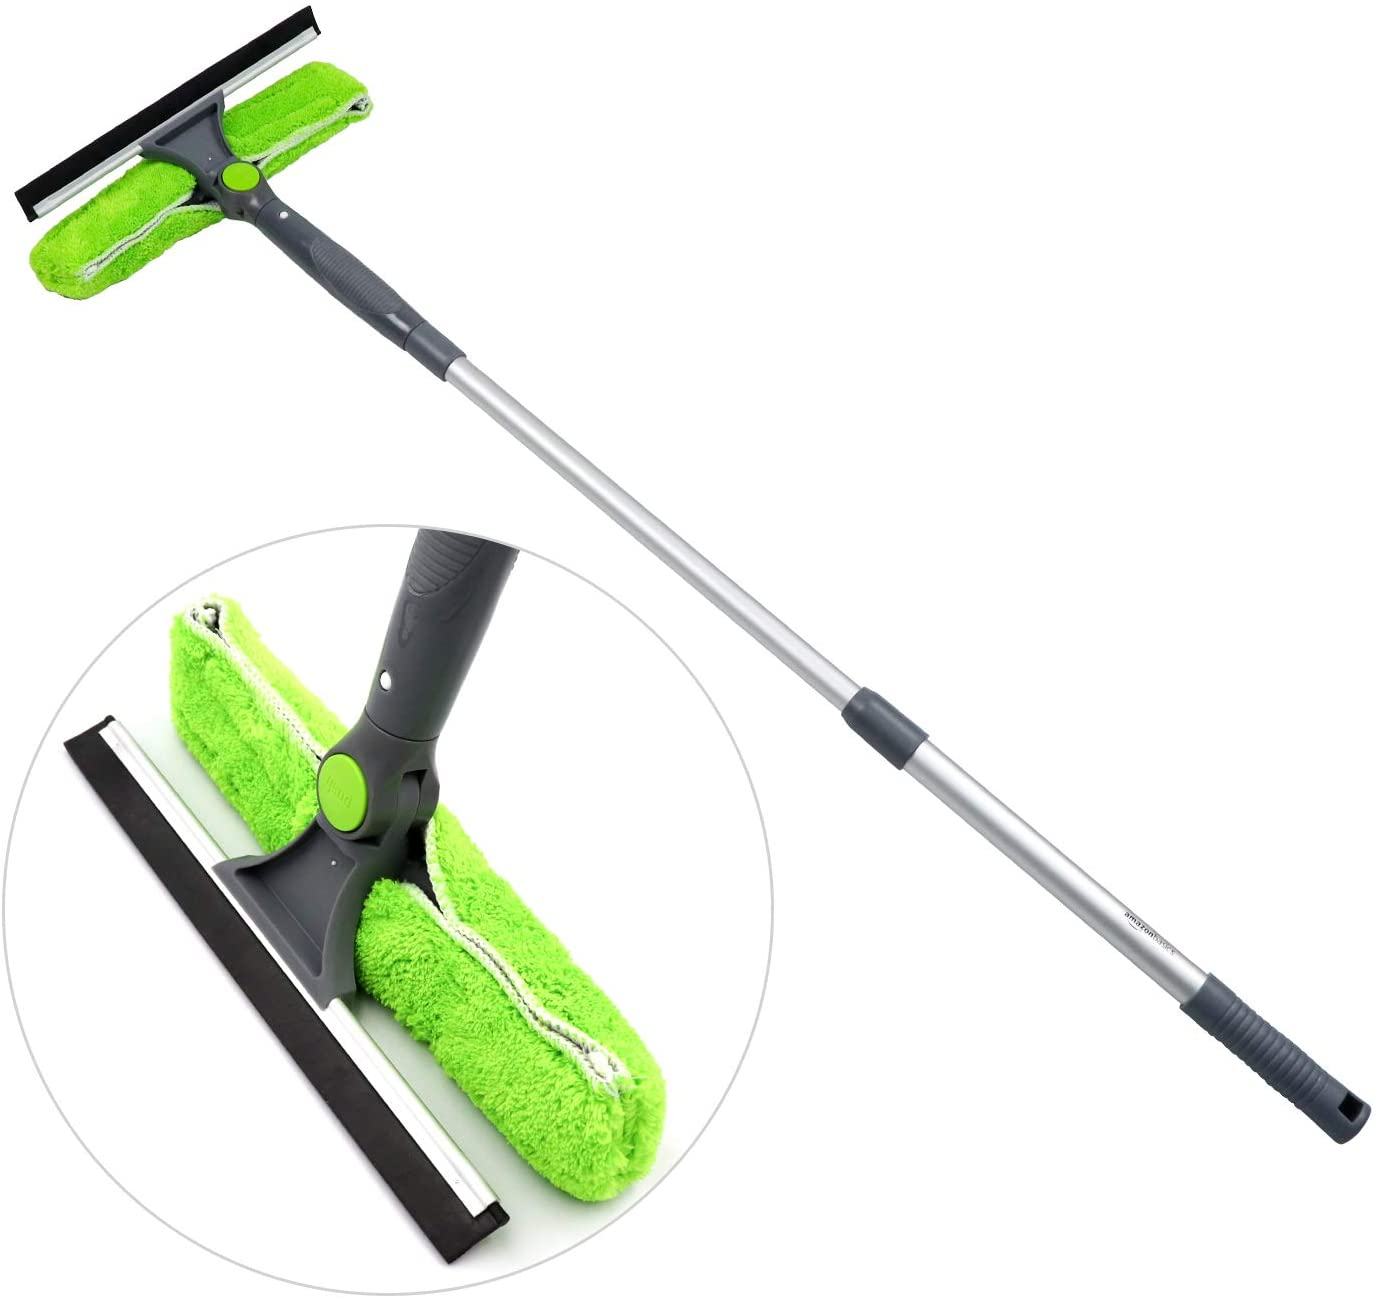 AmazonBasics Extendable Window Squeegee with Rotating Head